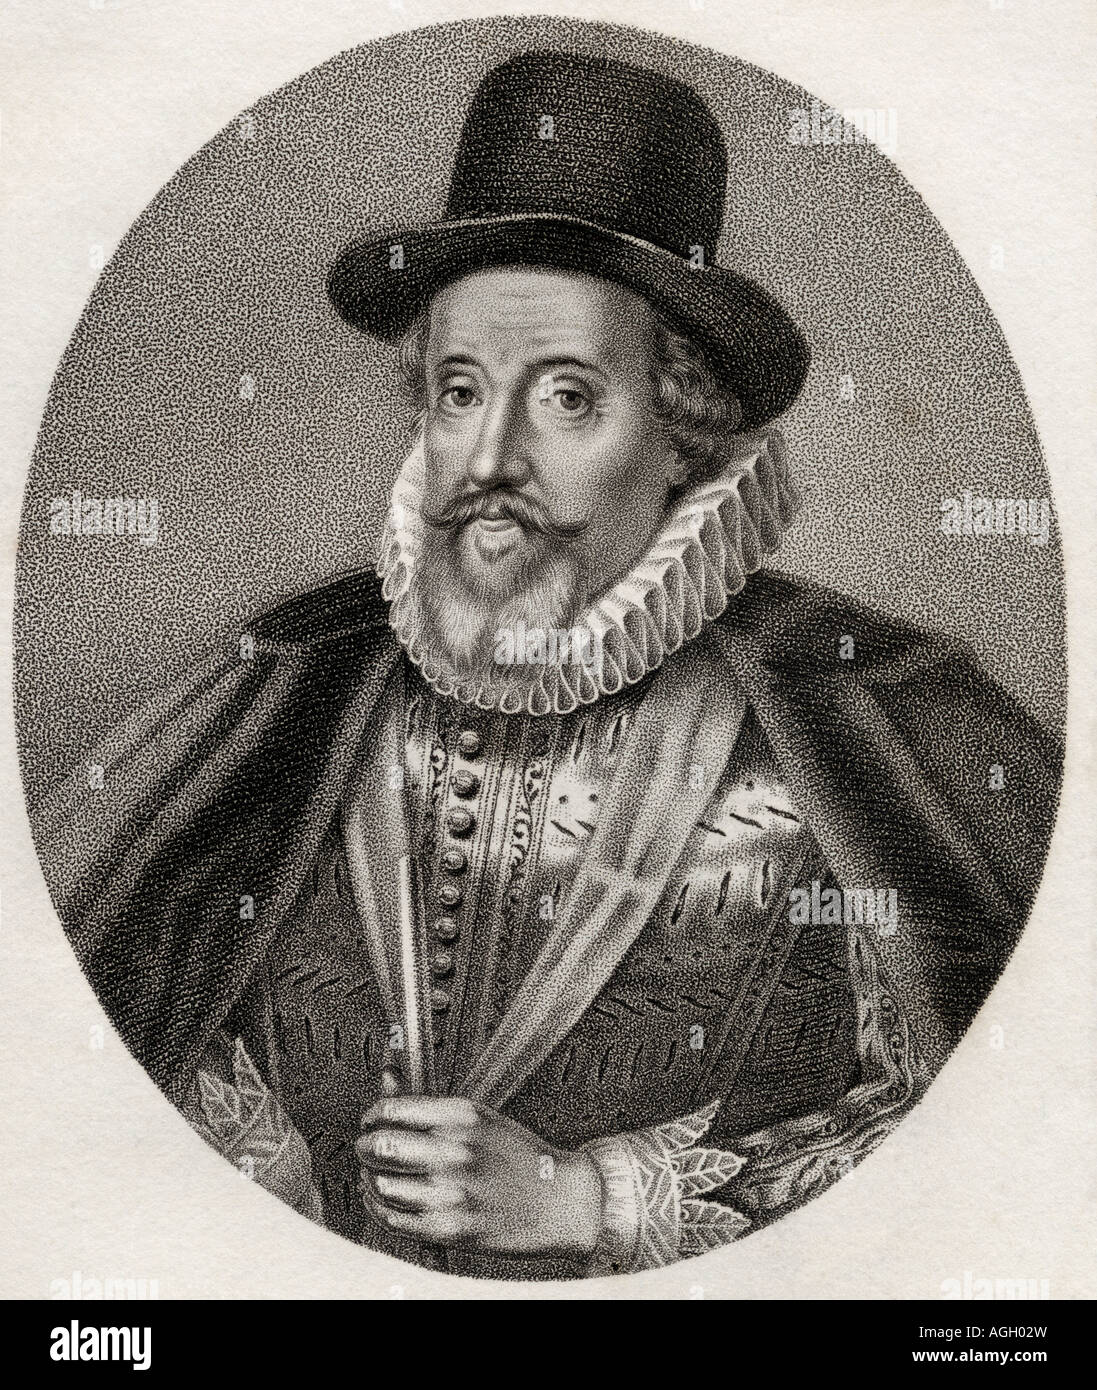 Thomas Howard, 1st Earl of Suffolk, Lord Howard of Walden, 1561 -1626. English Admiral and Knight of the Garter. Stock Photo